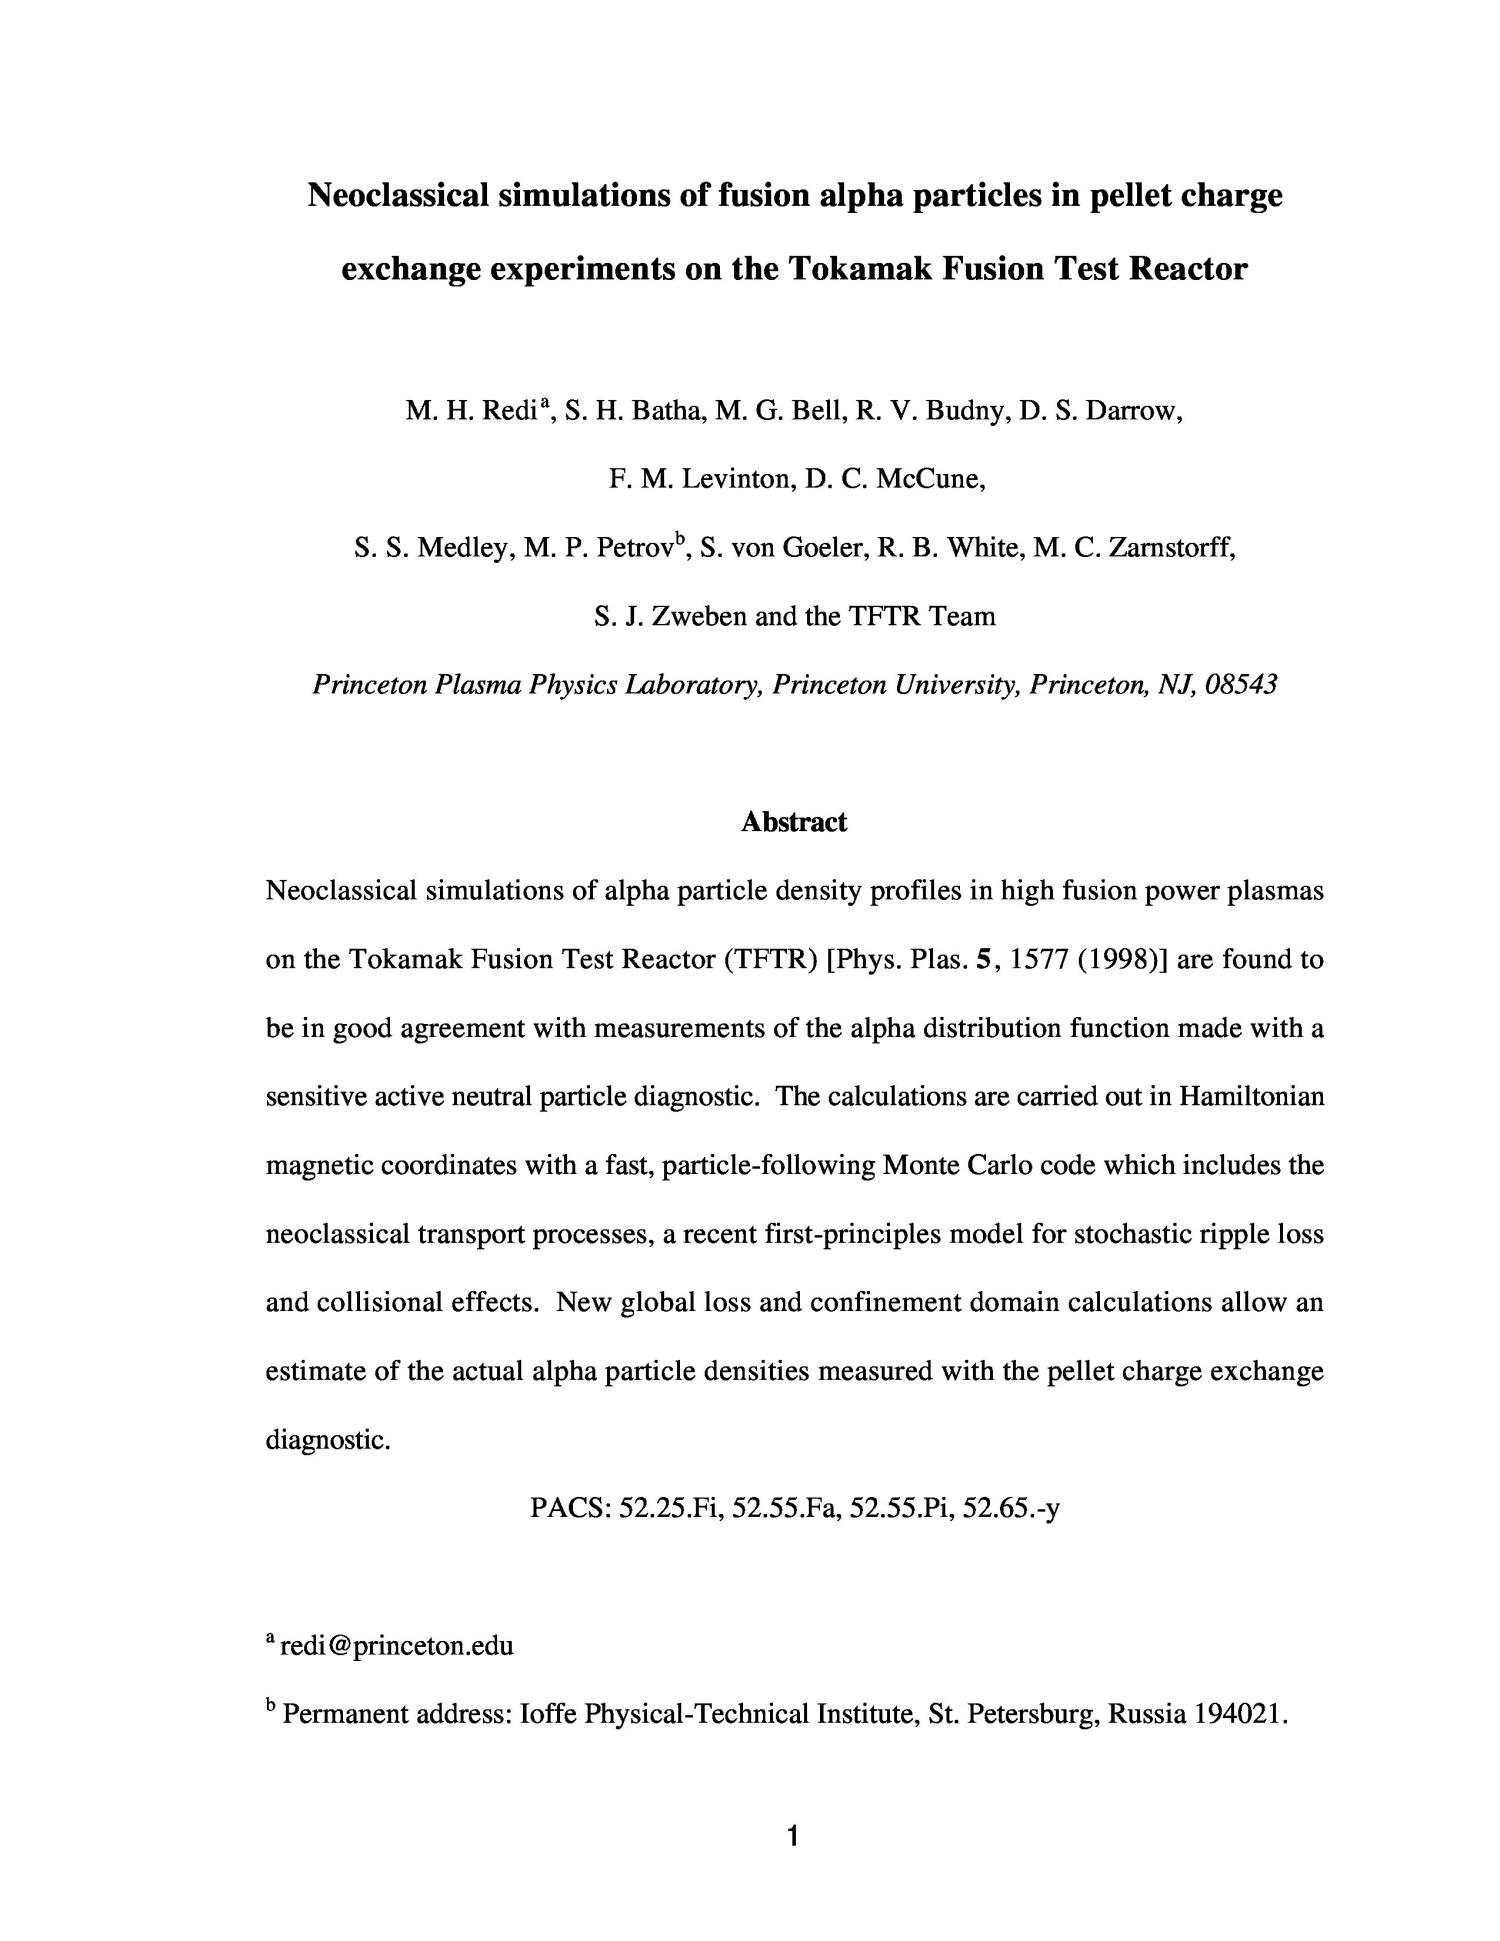 Neoclassical Simulations Of Fusion Alpha Particles In Pellet